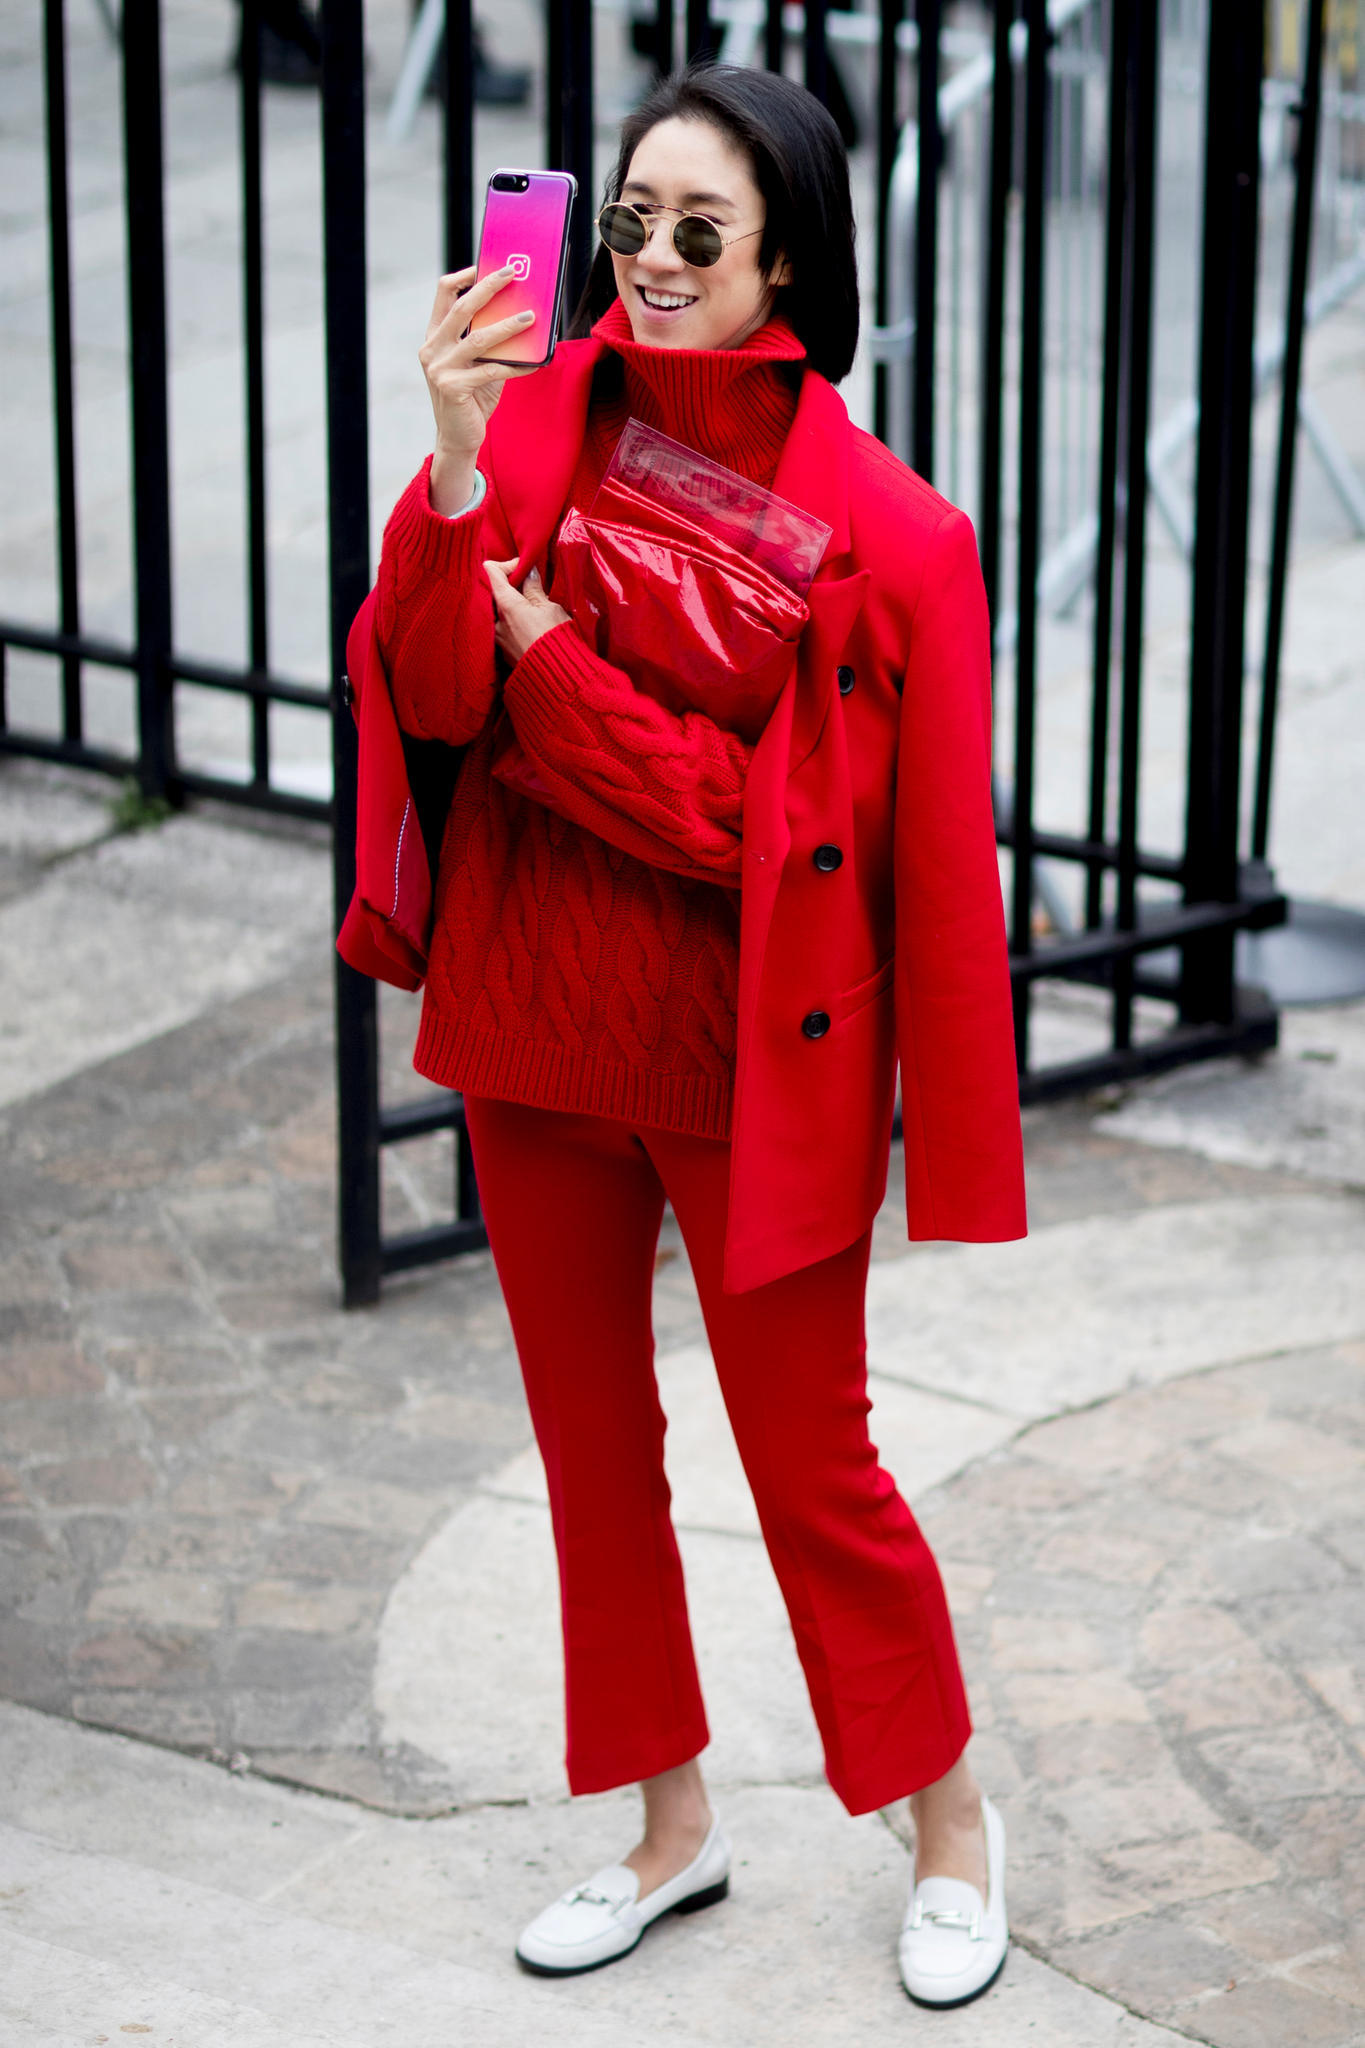 Monochrome-Look in Rot als Streetstyle